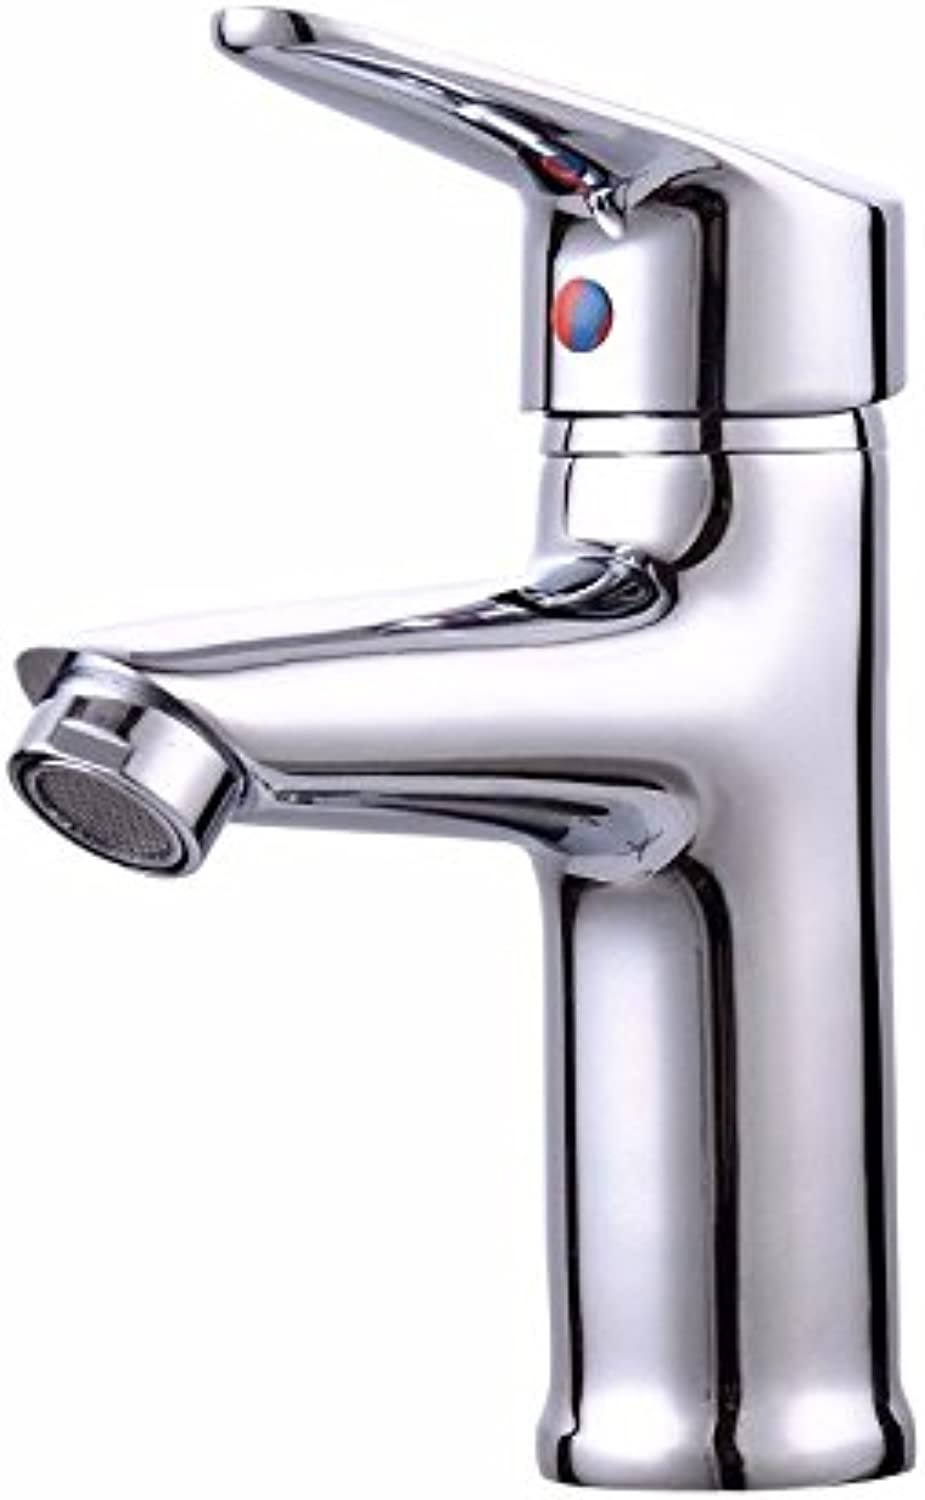 LIANTIAN Copper???Single Hole???Single???hot and Cold Water Mixing Basin Faucet???Kitchen Bathroom Basin Faucet Simple Environmental Predection Energy Saving Low Lead Bathroom Sink Taps